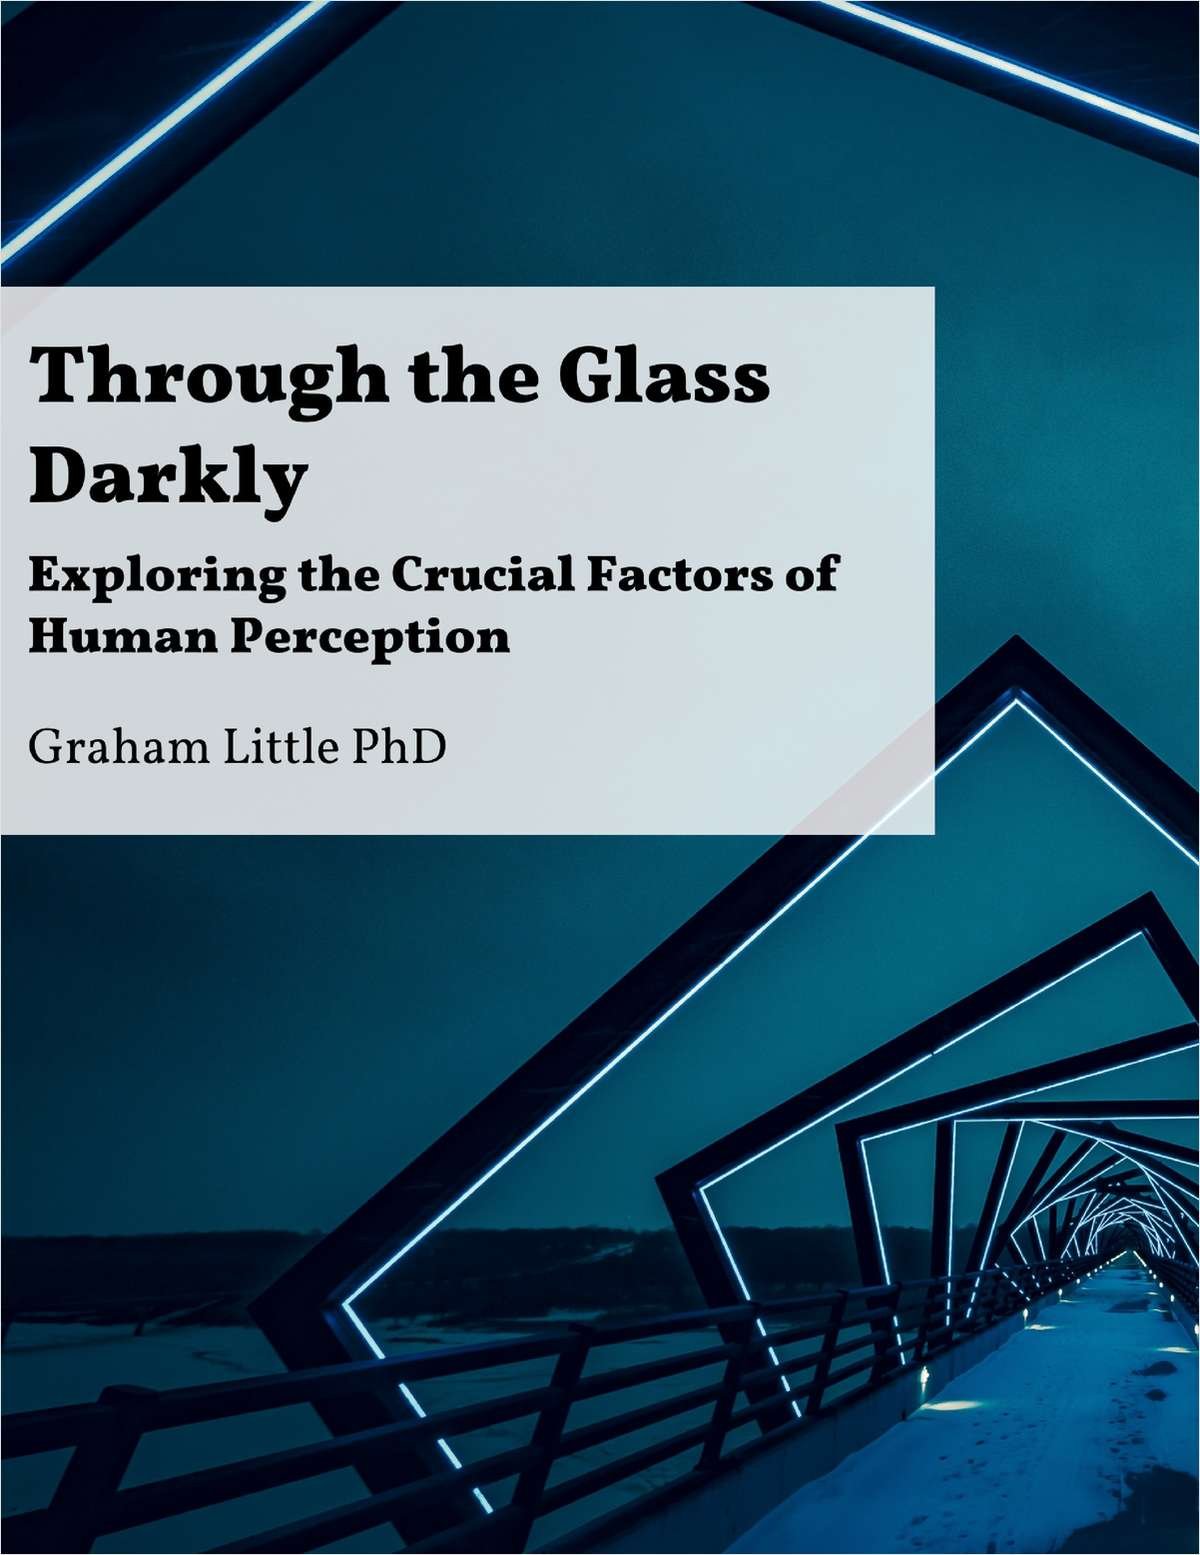 Through the Glass Darkly - Exploring the Crucial Factors of Human Perception